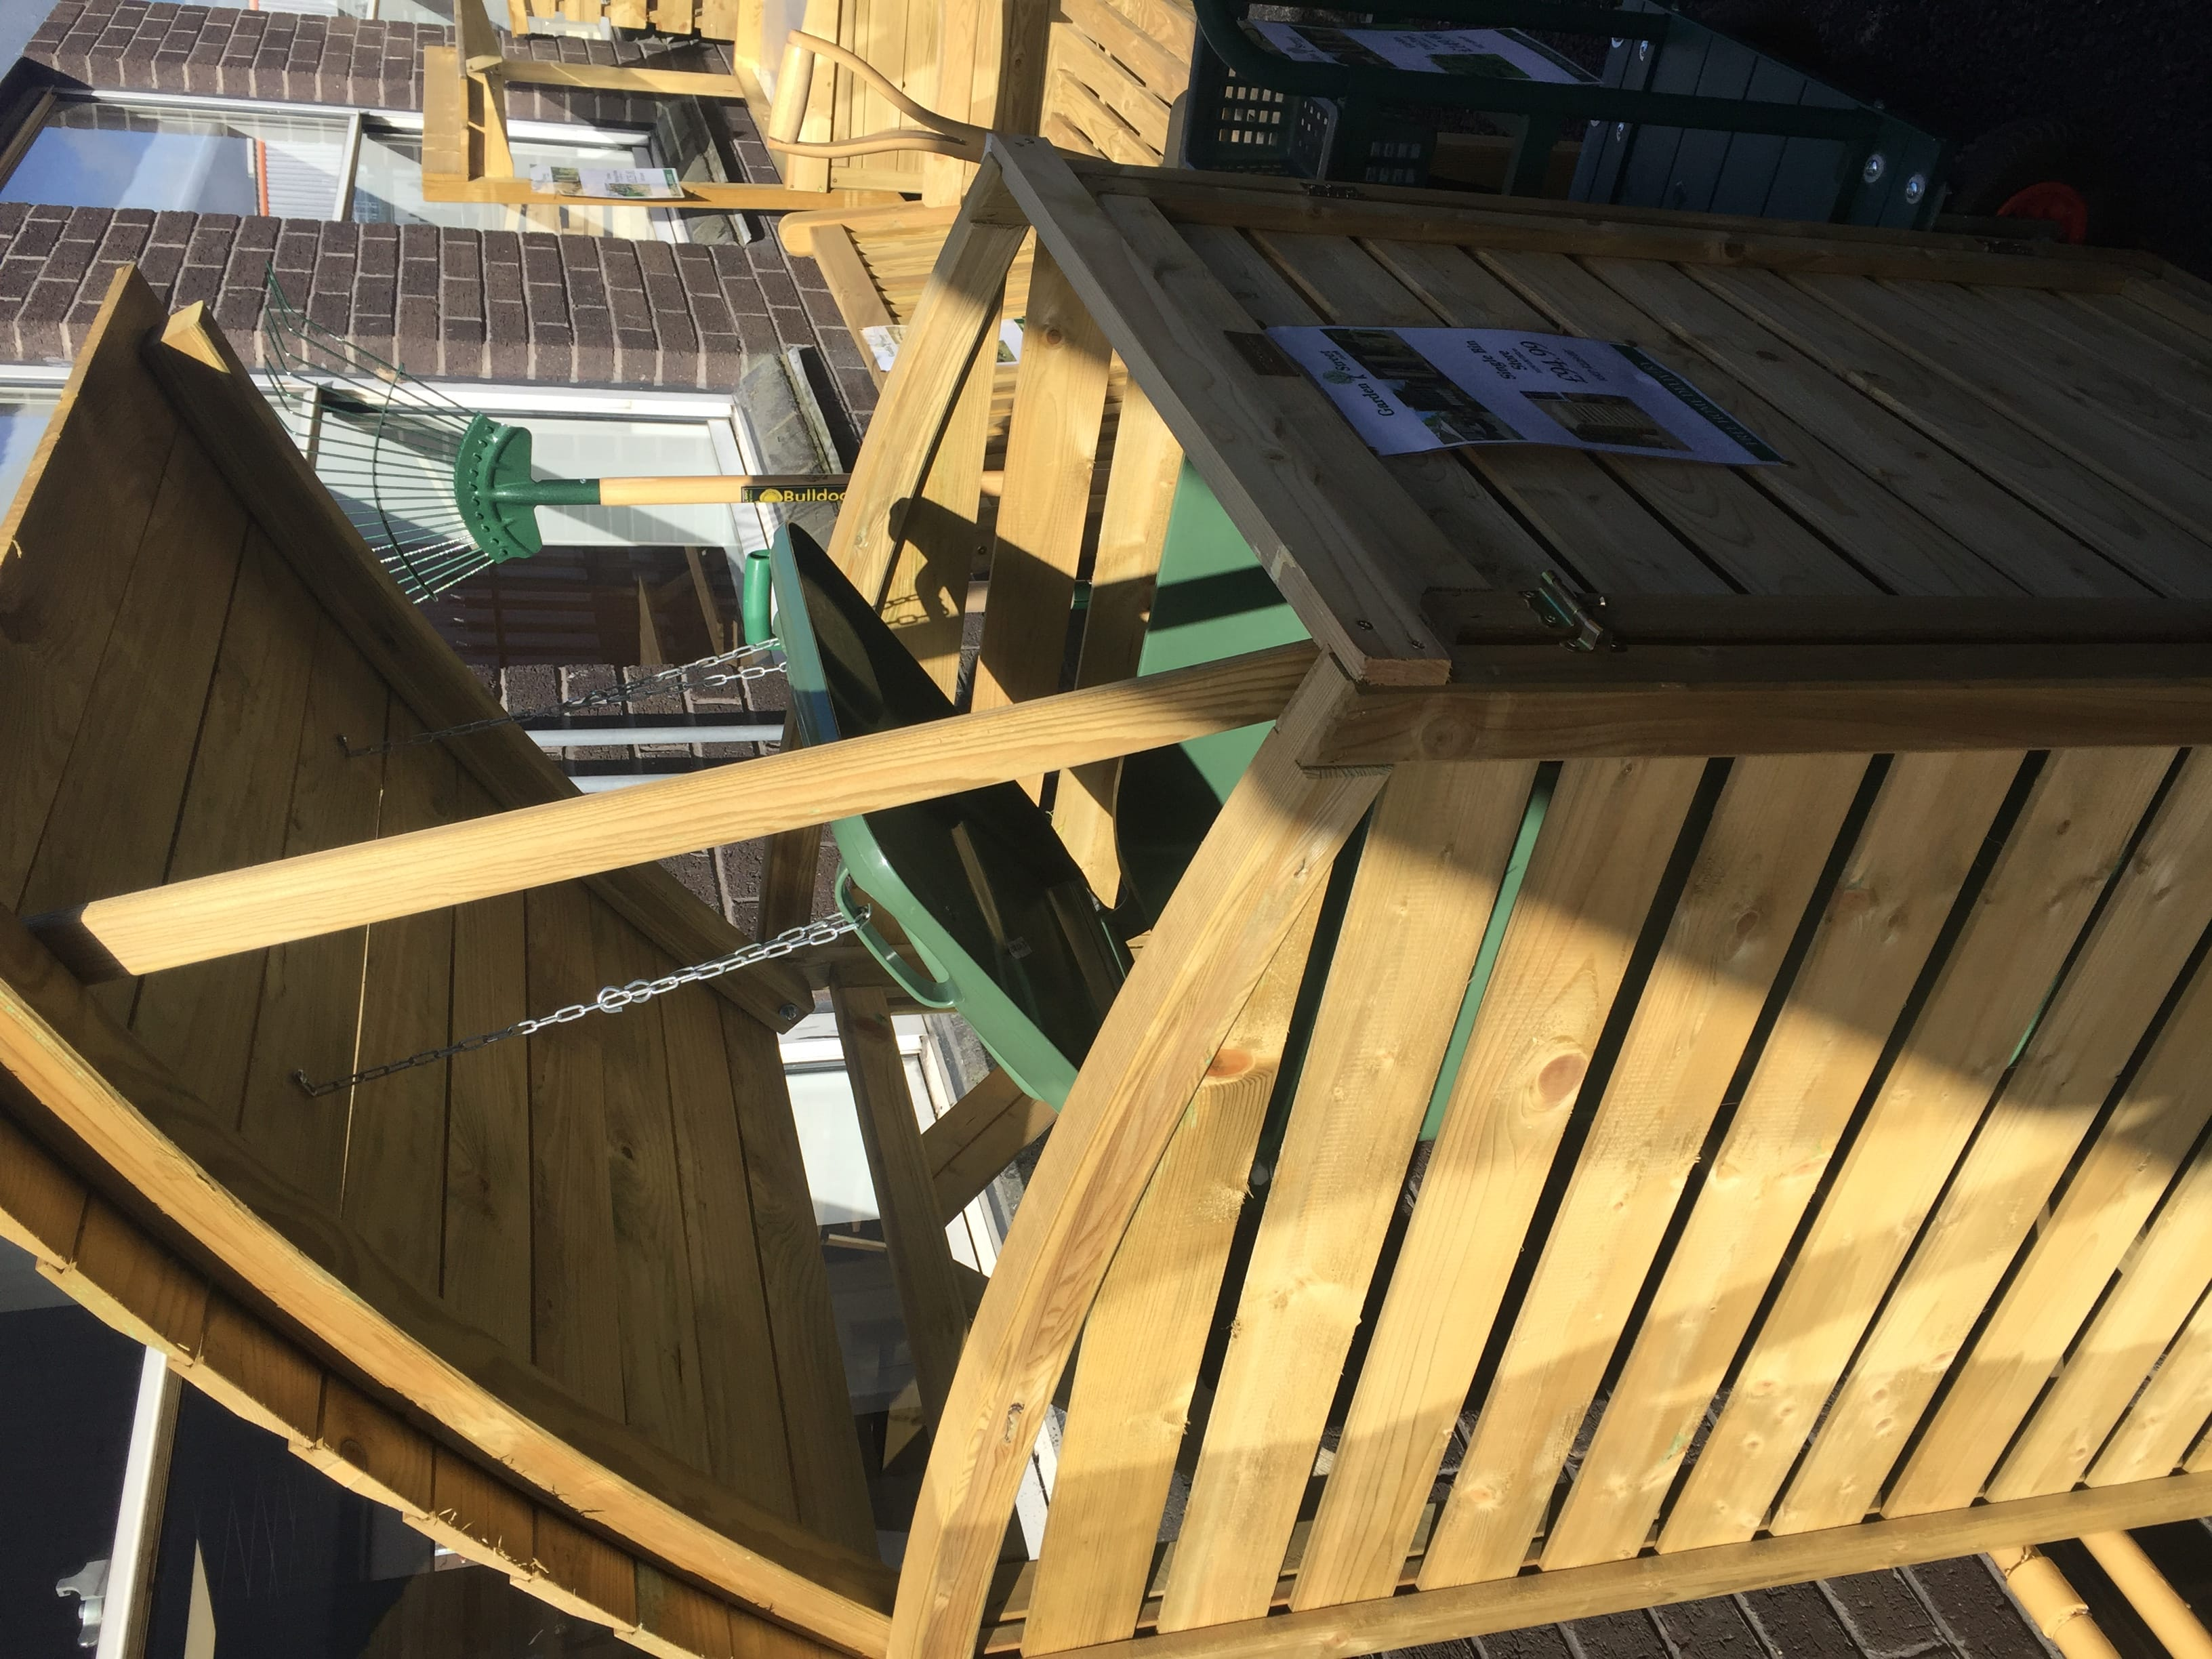 How To Build A Wooden Wheelie Bin Store The